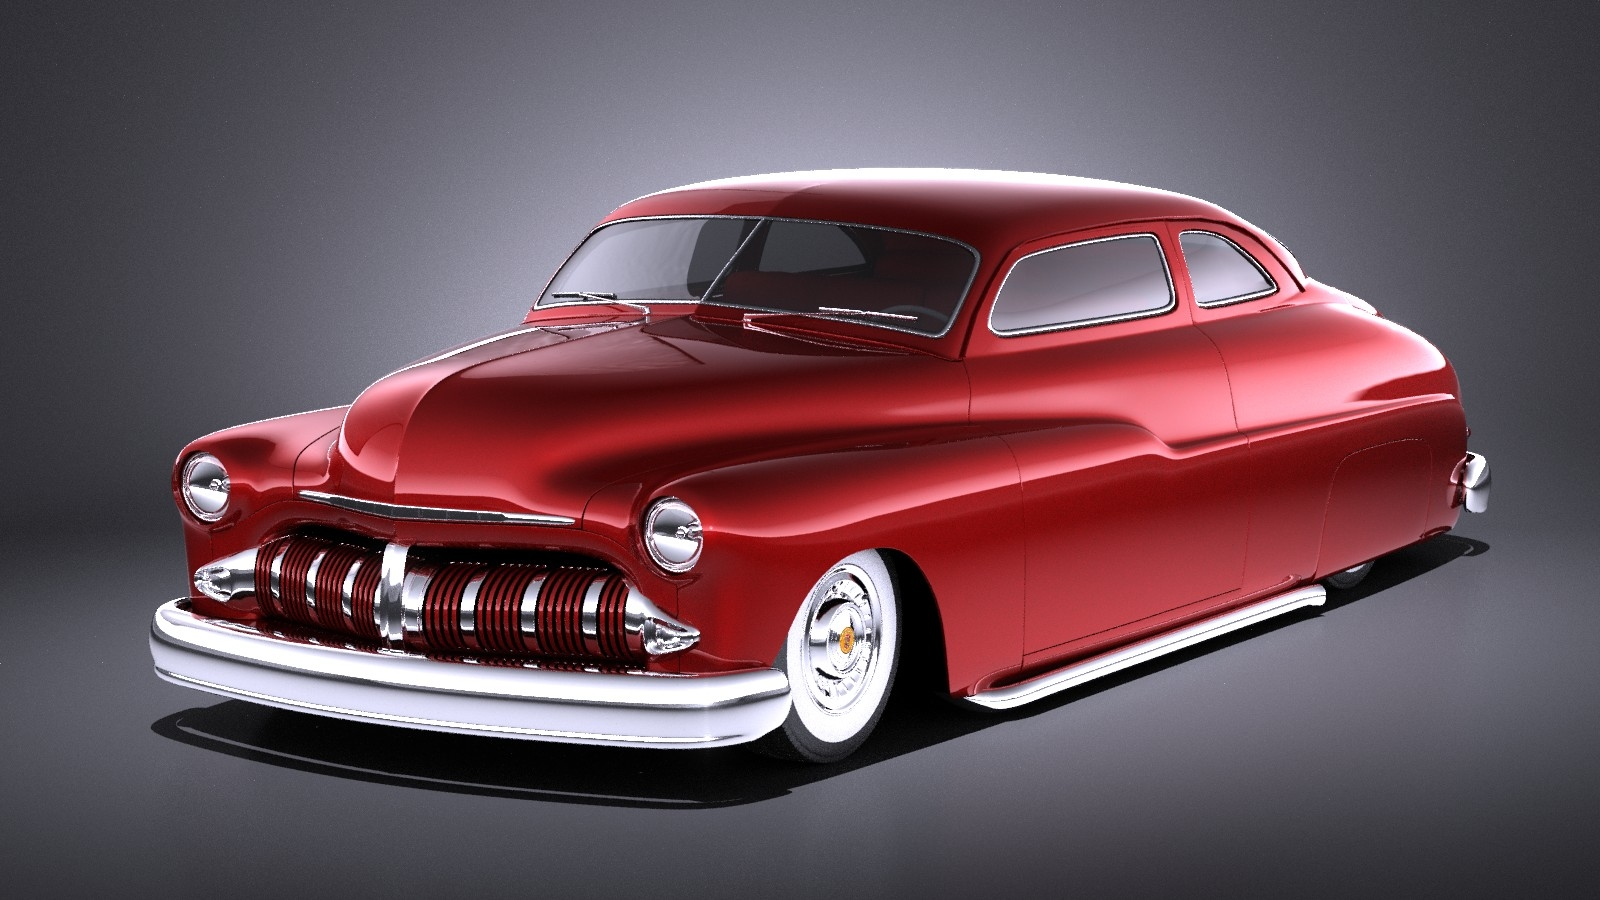 1950 Used Mercury Custom Coupe At Eimports4less Serving